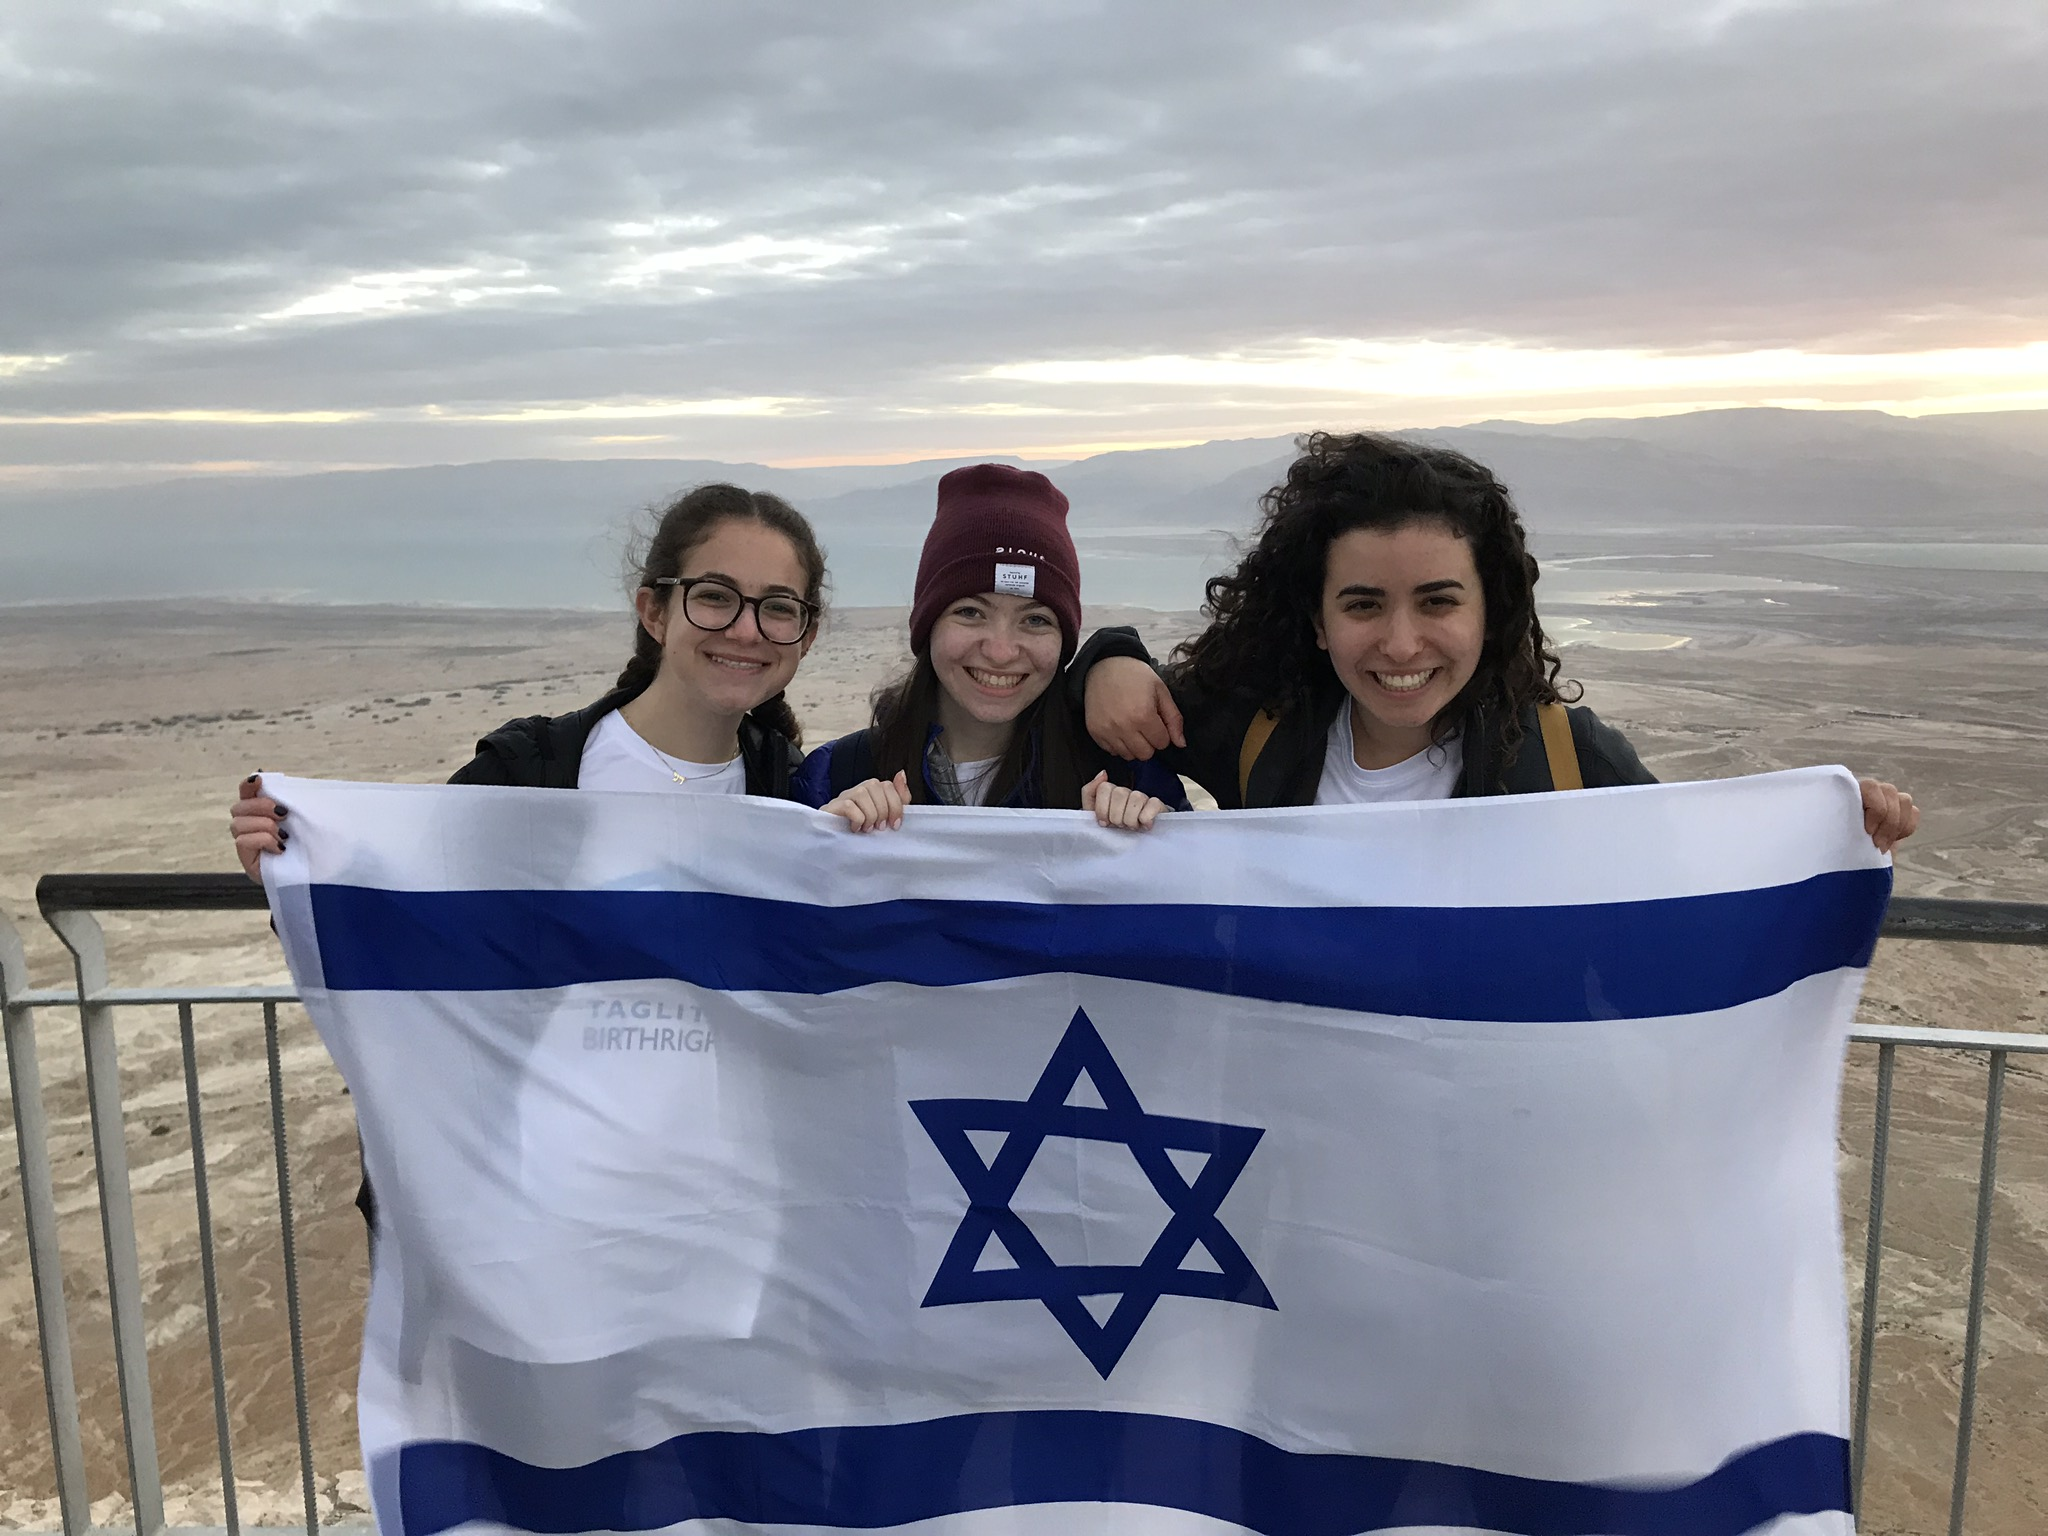 1_58-Amys-Birthright-Trip